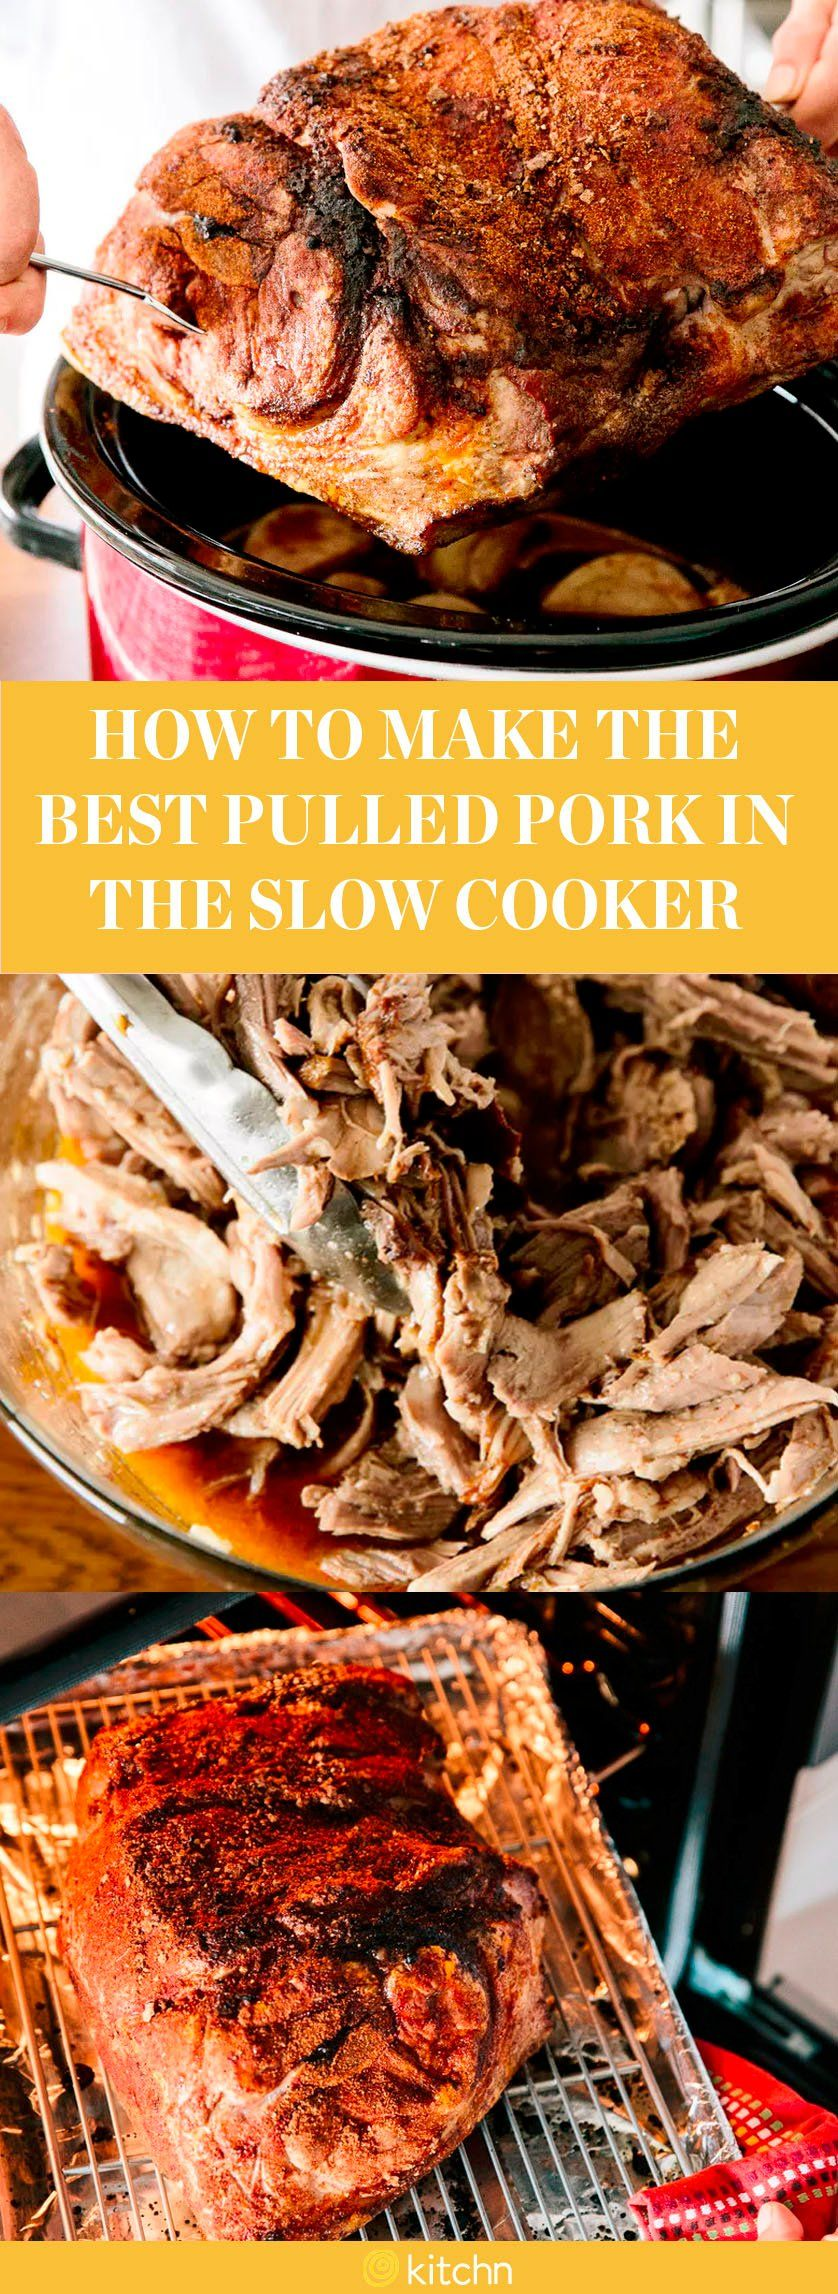 how to make pulled pork in a crockpot